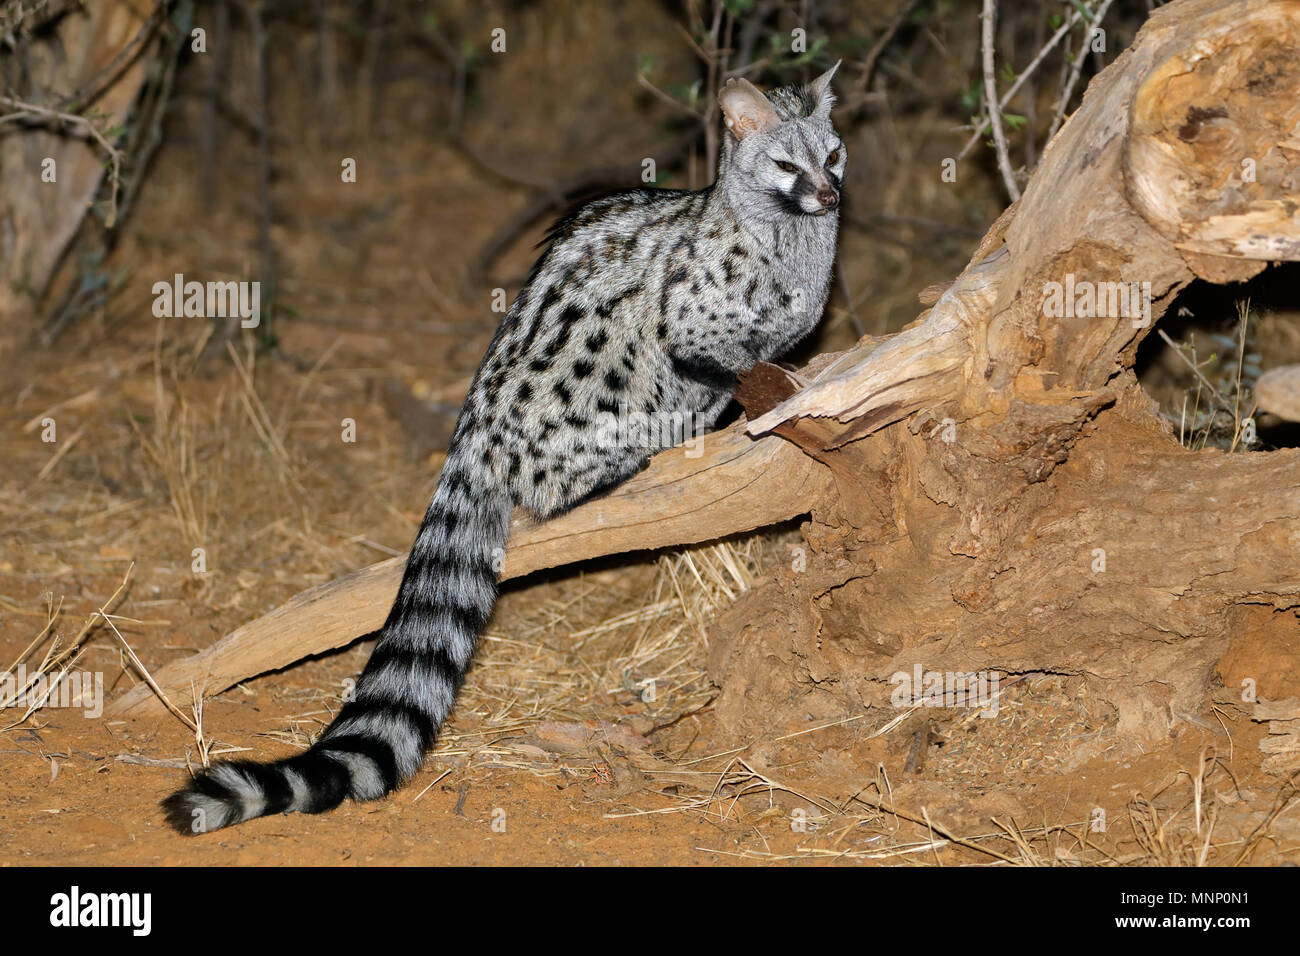 Large-spotted genet (Genetta tigrina) in natural habitat, South Africa Stock Photo